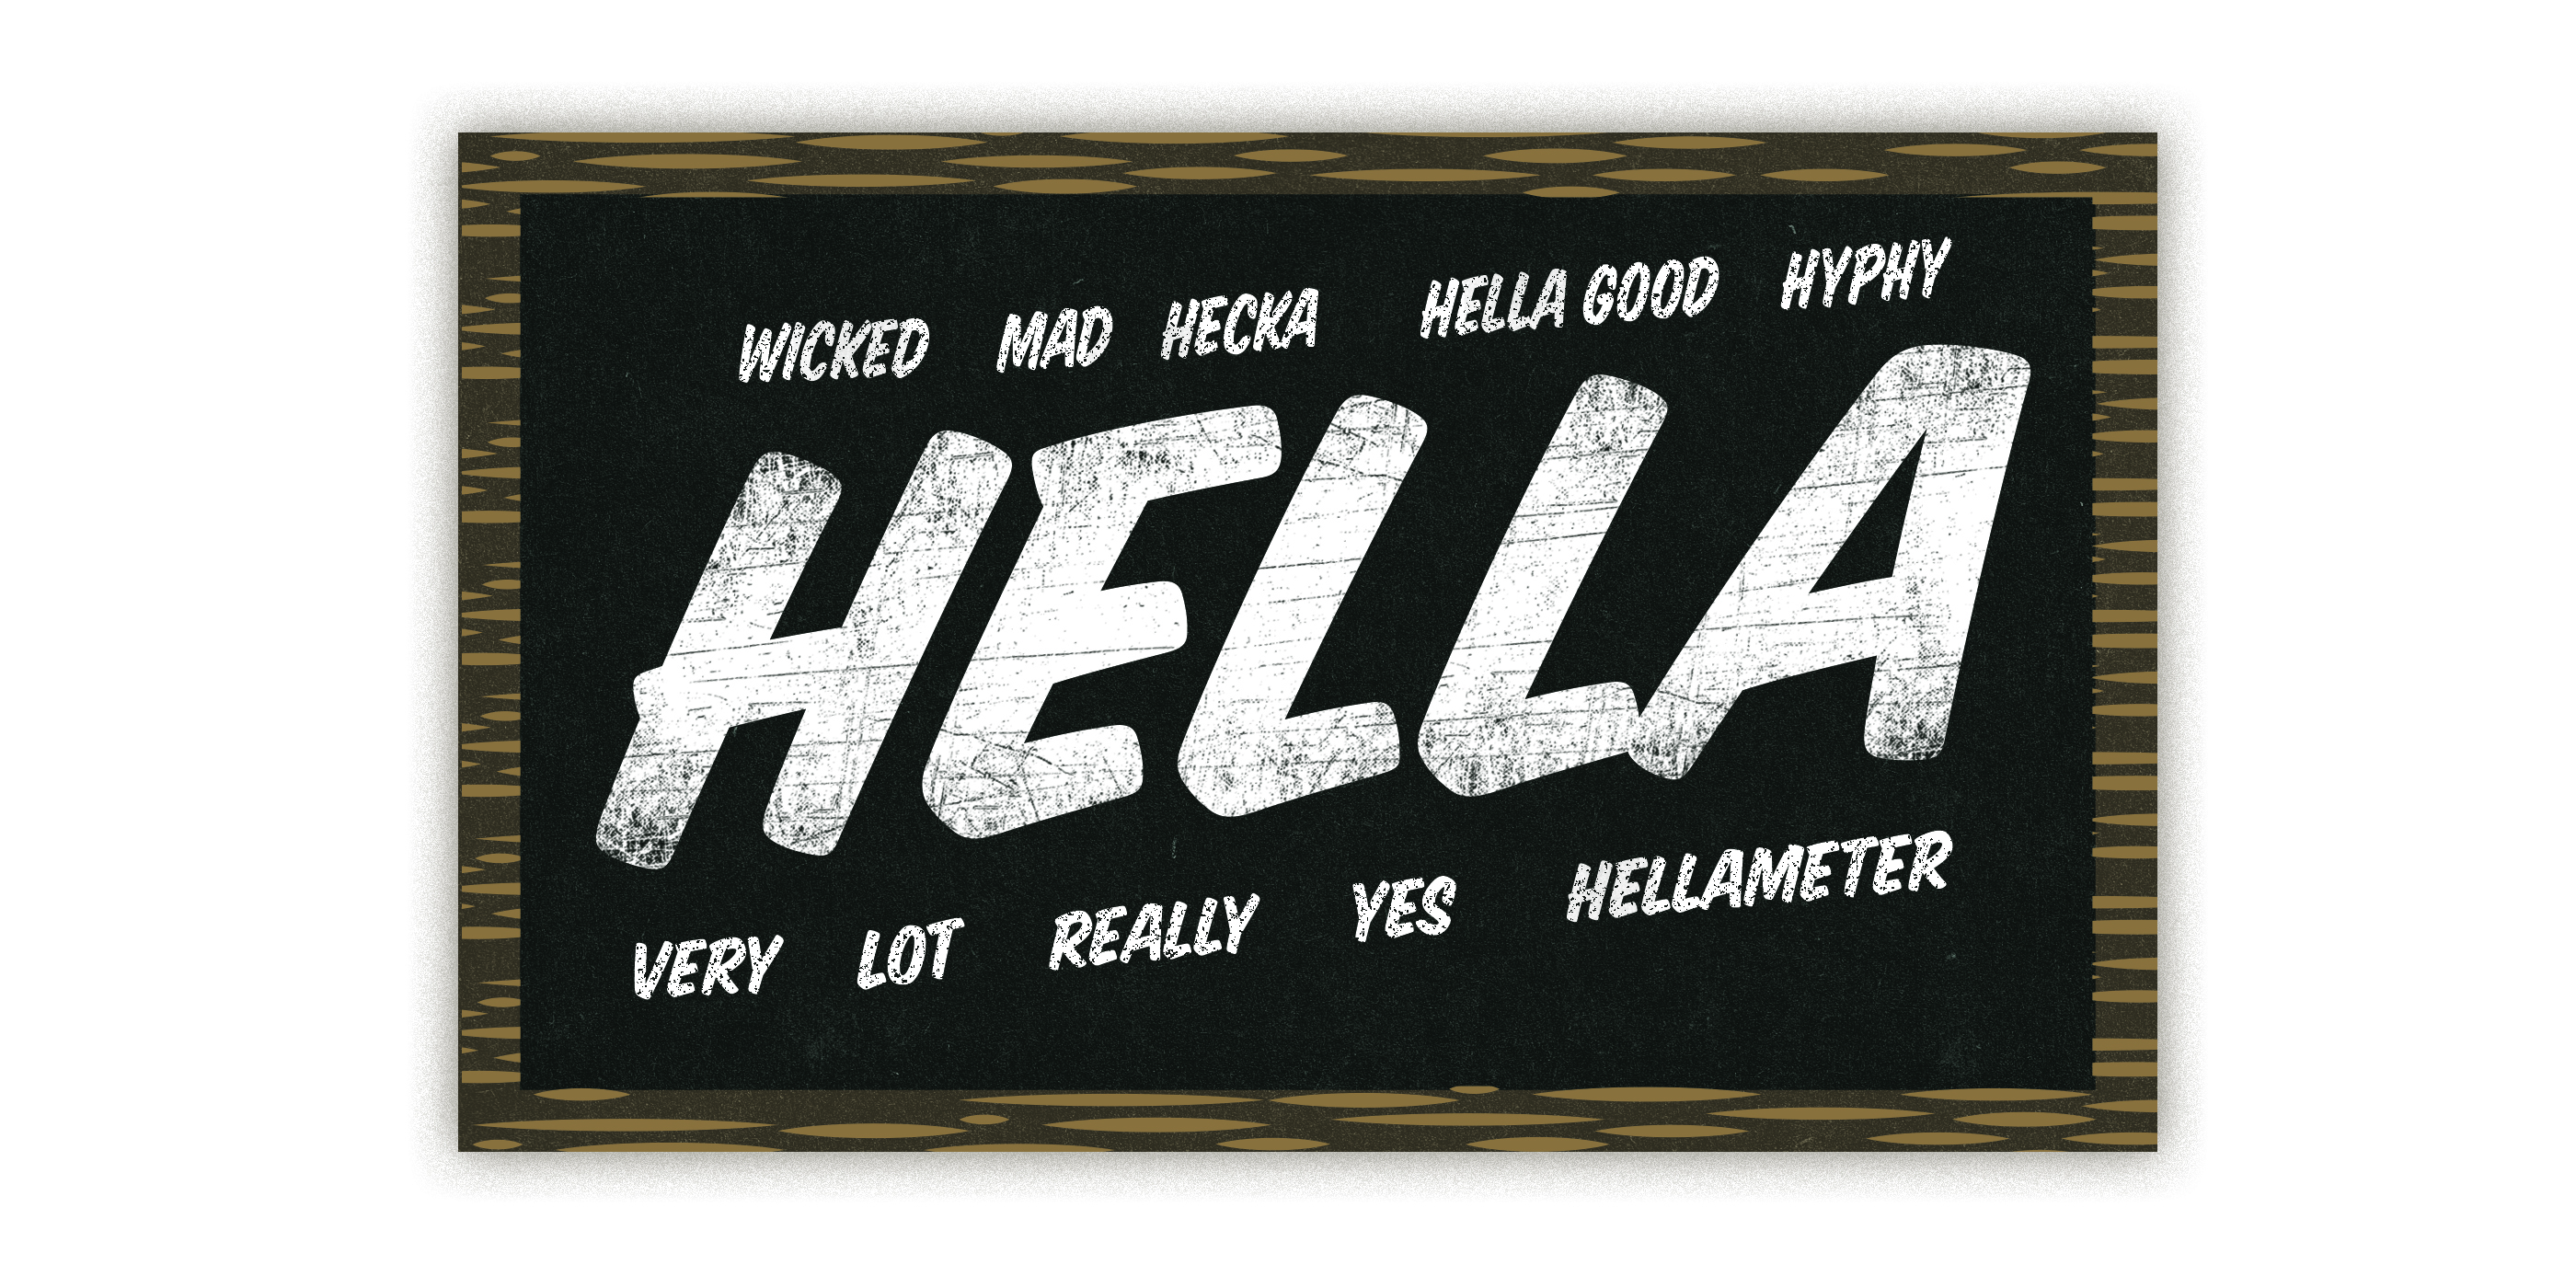 Hella Facts About the Word Hella